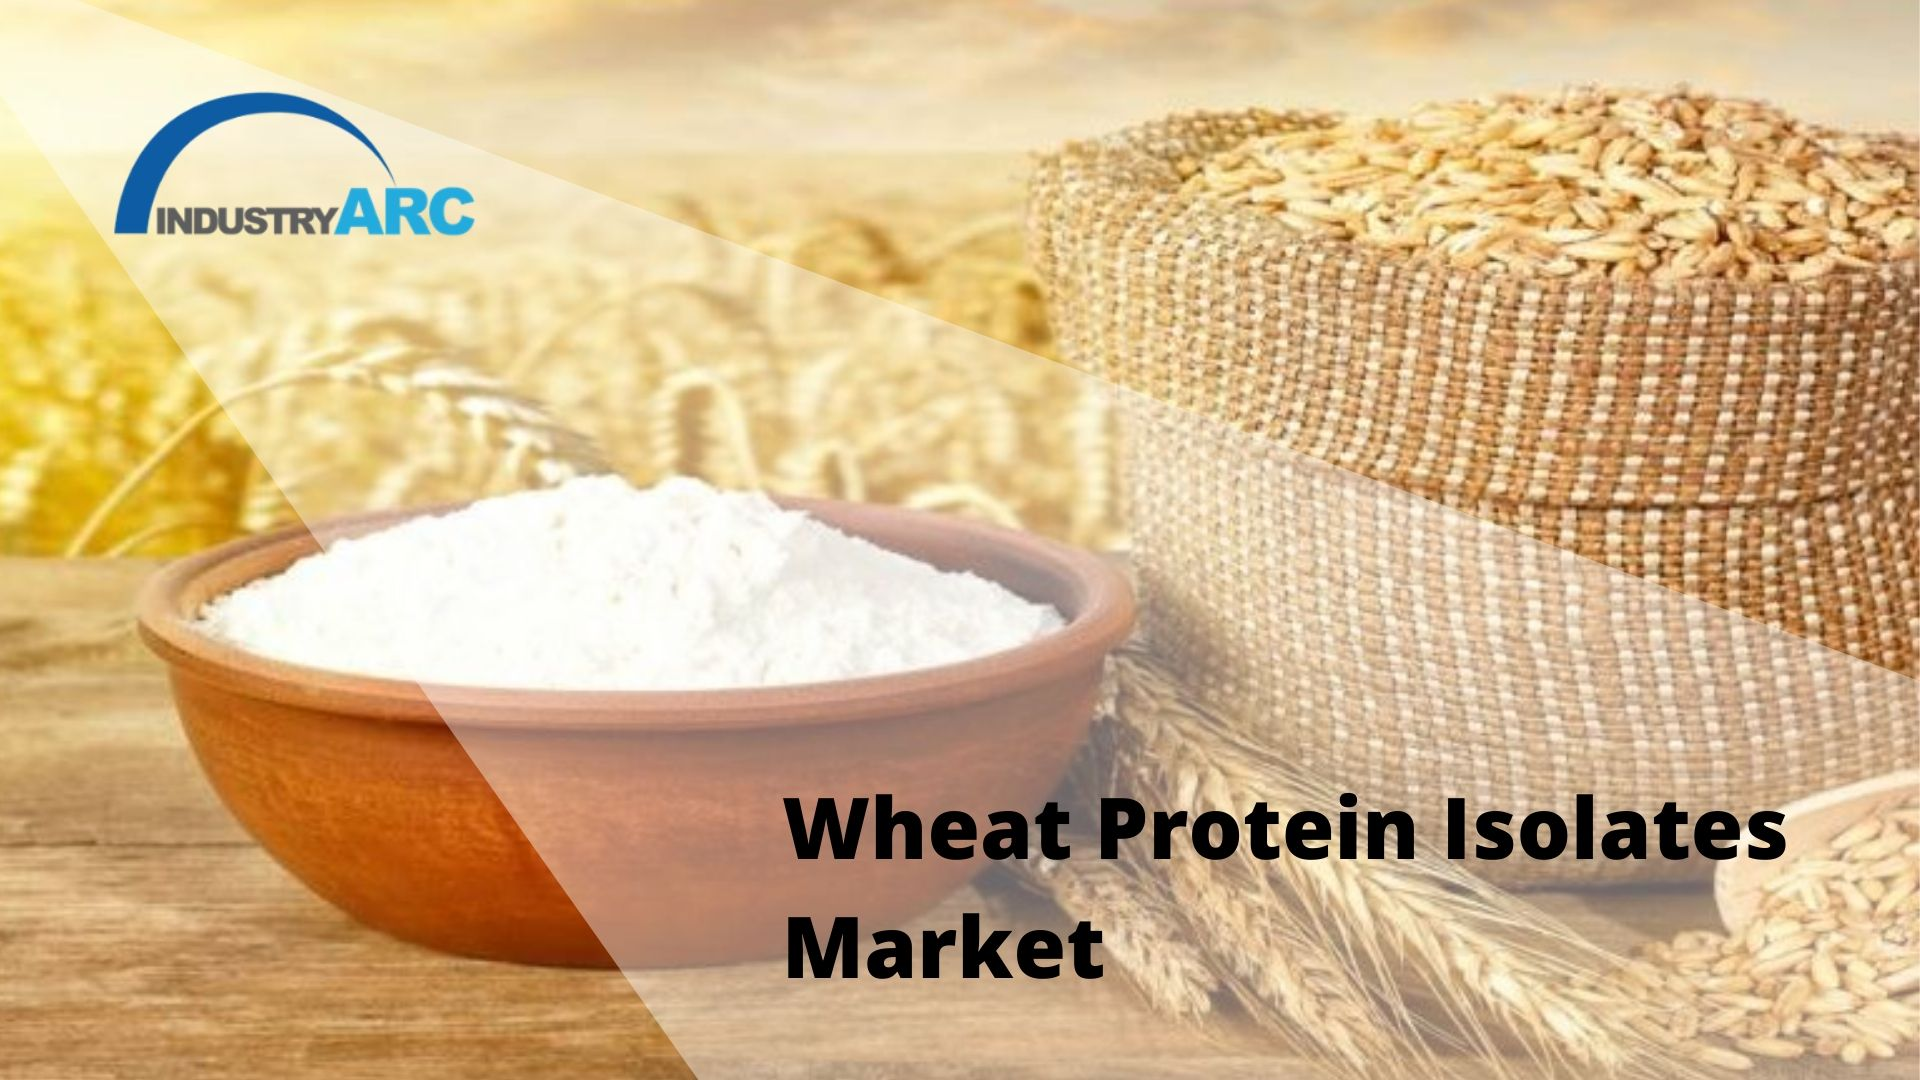 Wheat Protein Isolates Market